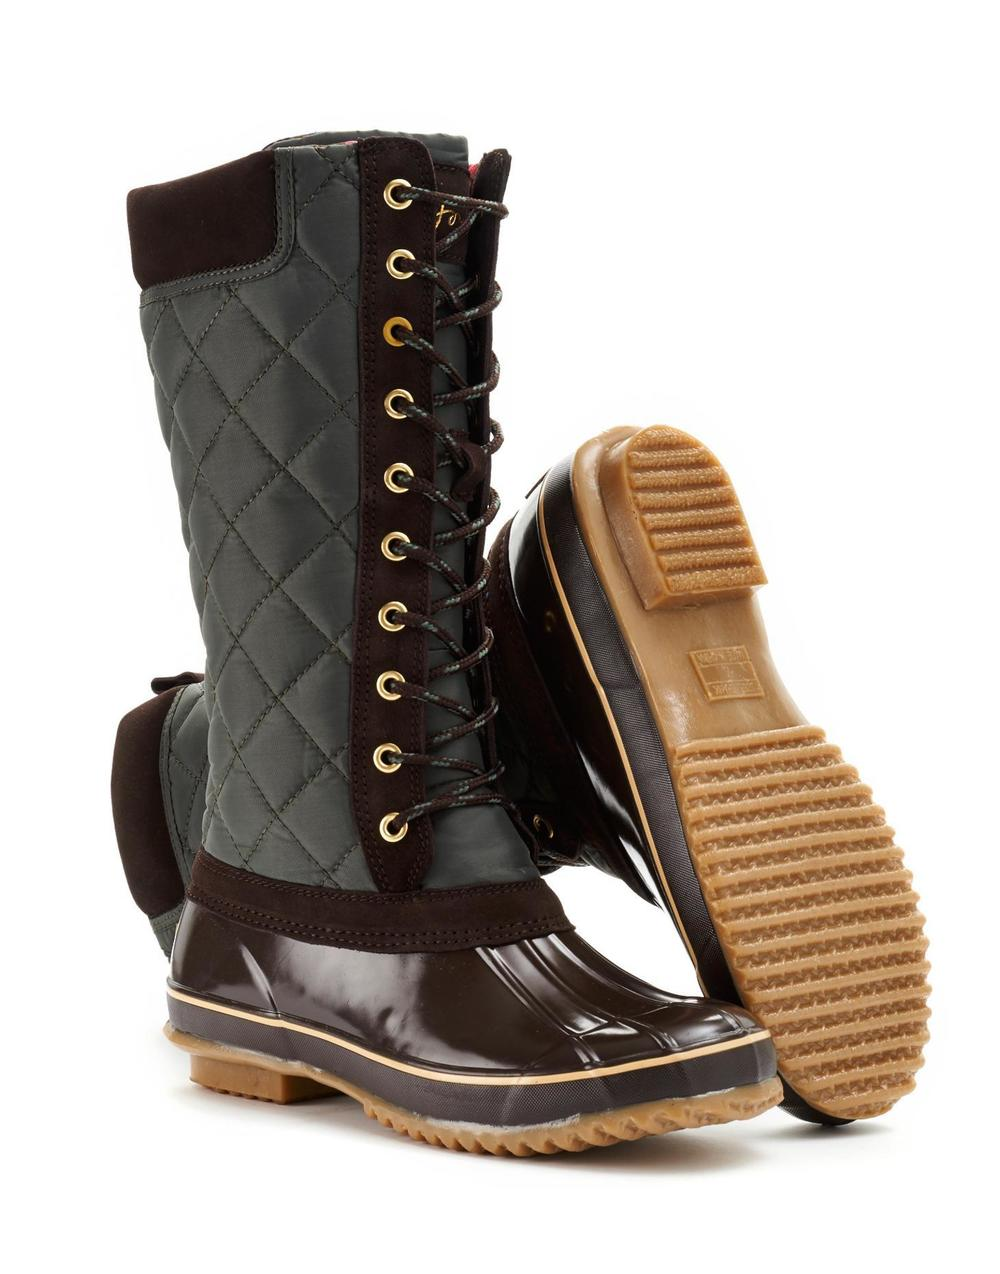 Joules, Lace Up Muck Boot £49.95